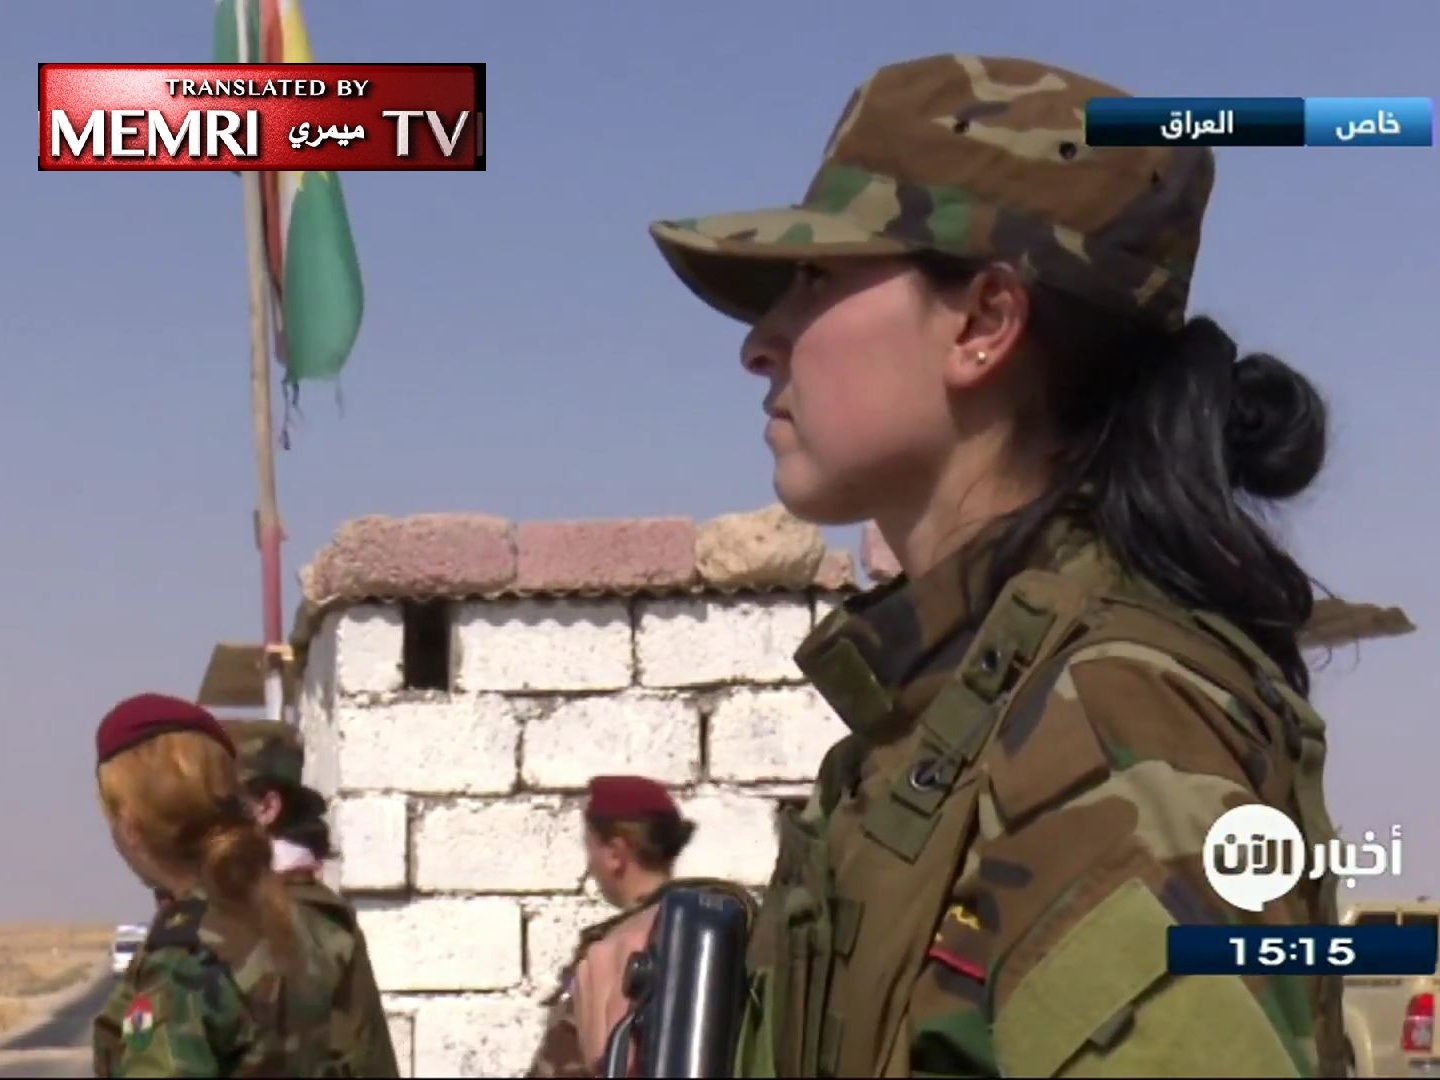 TV Report on Yazidi Female Brigade Fighting ISIS